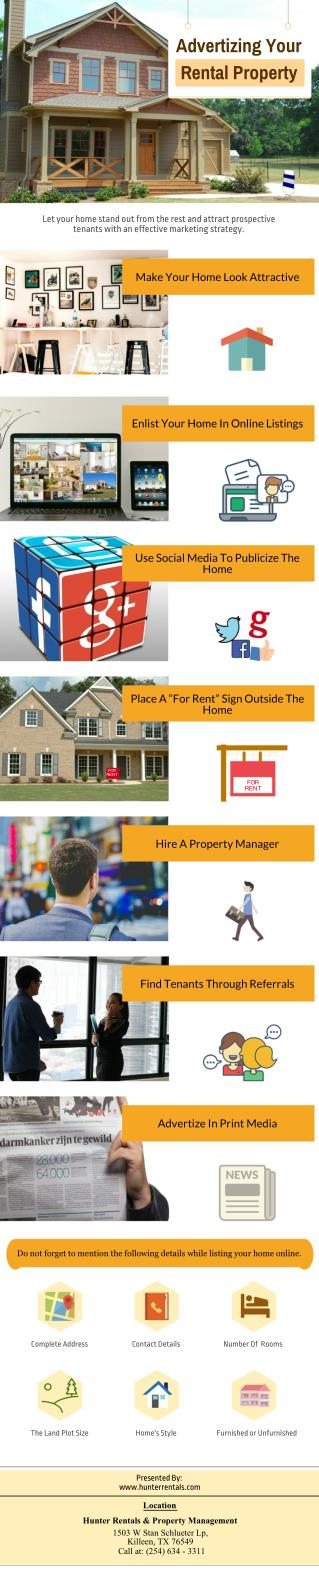 Advertizing Your Home Rental Property